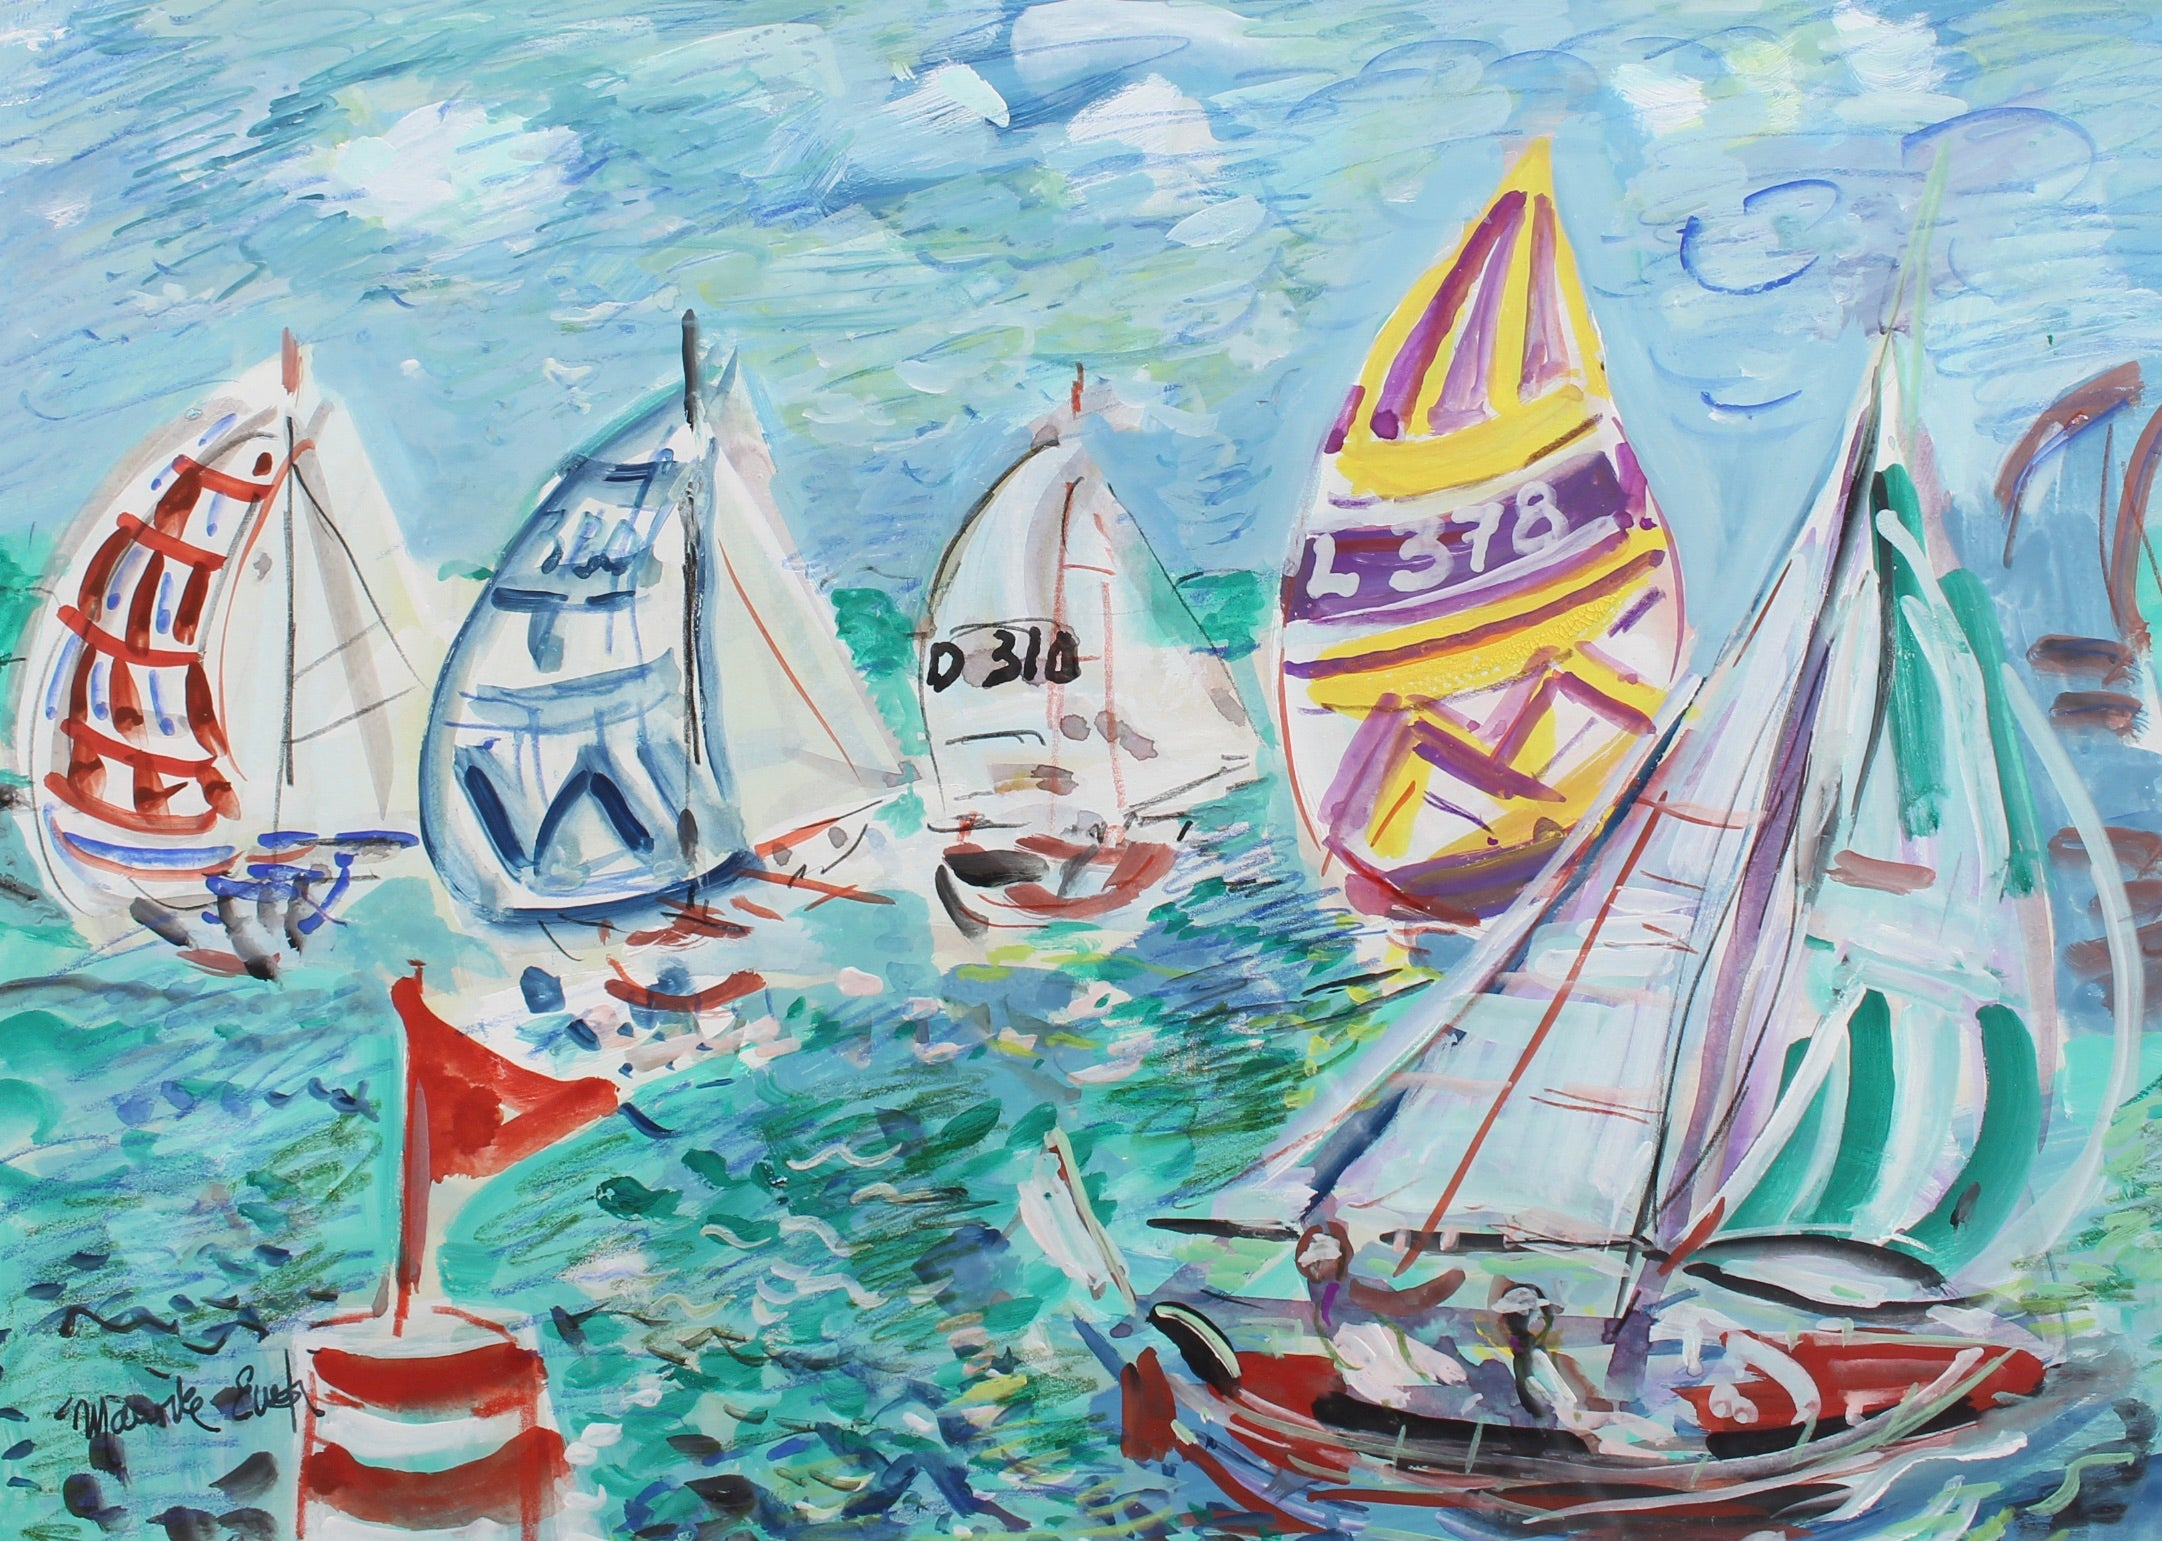 'Spinnakers Out at La Trinité Regatta' by Maurice Empi (circa 1970s)